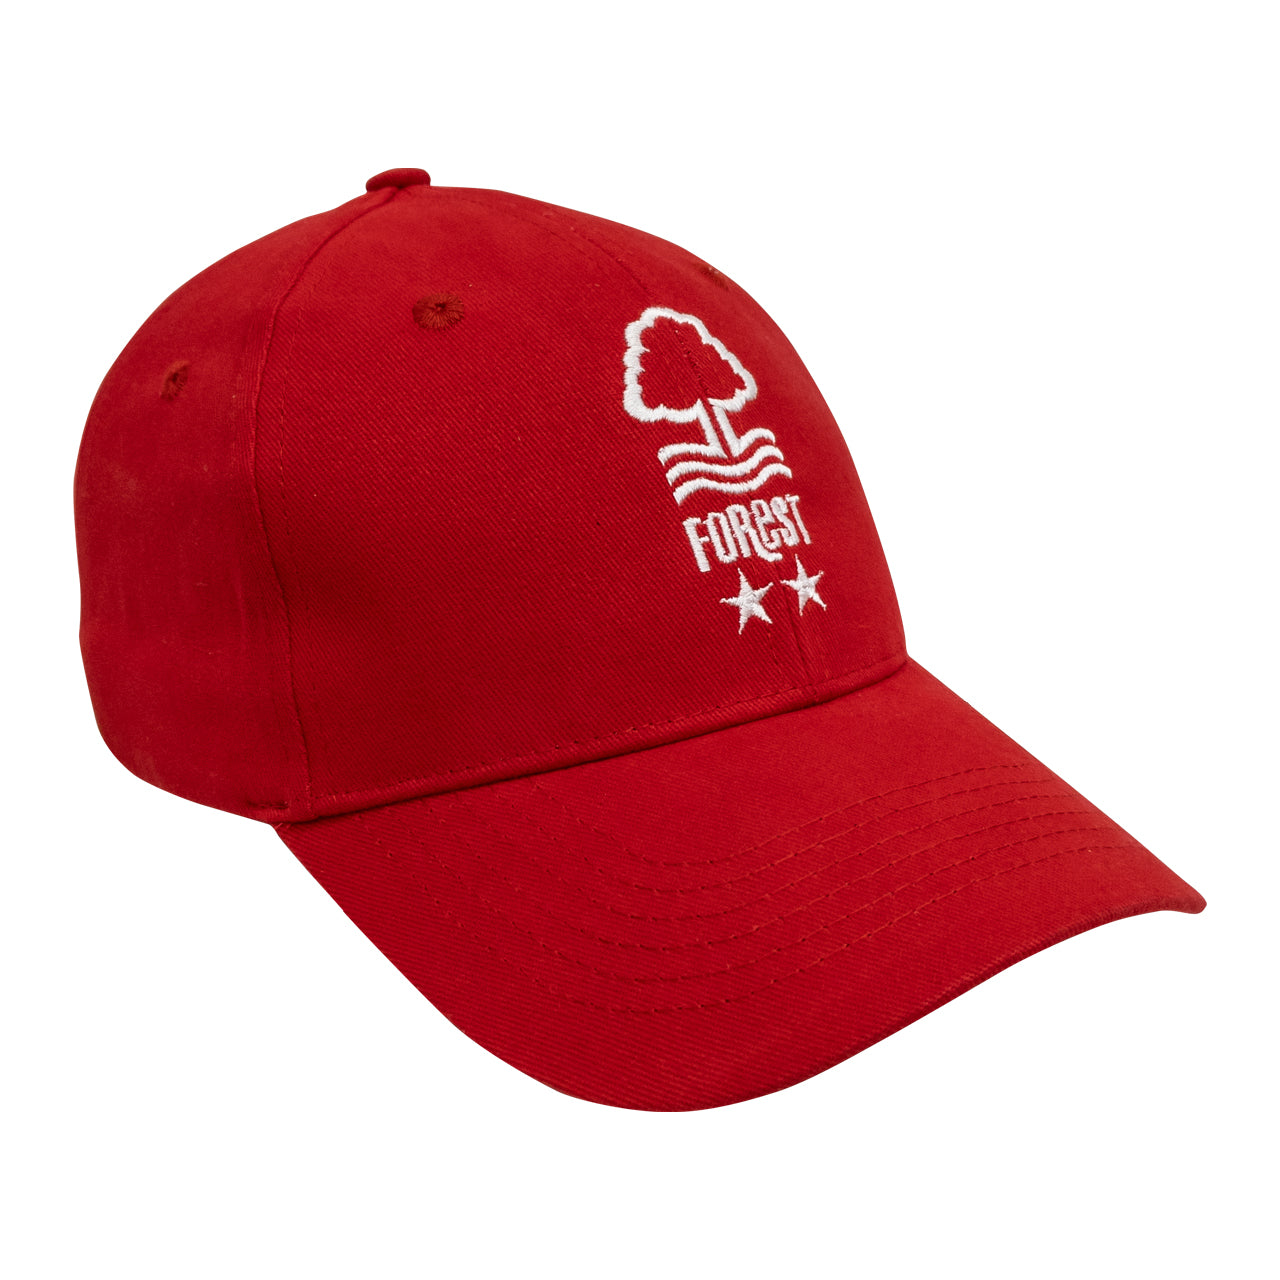 NFFC Red Adult Crest Cap